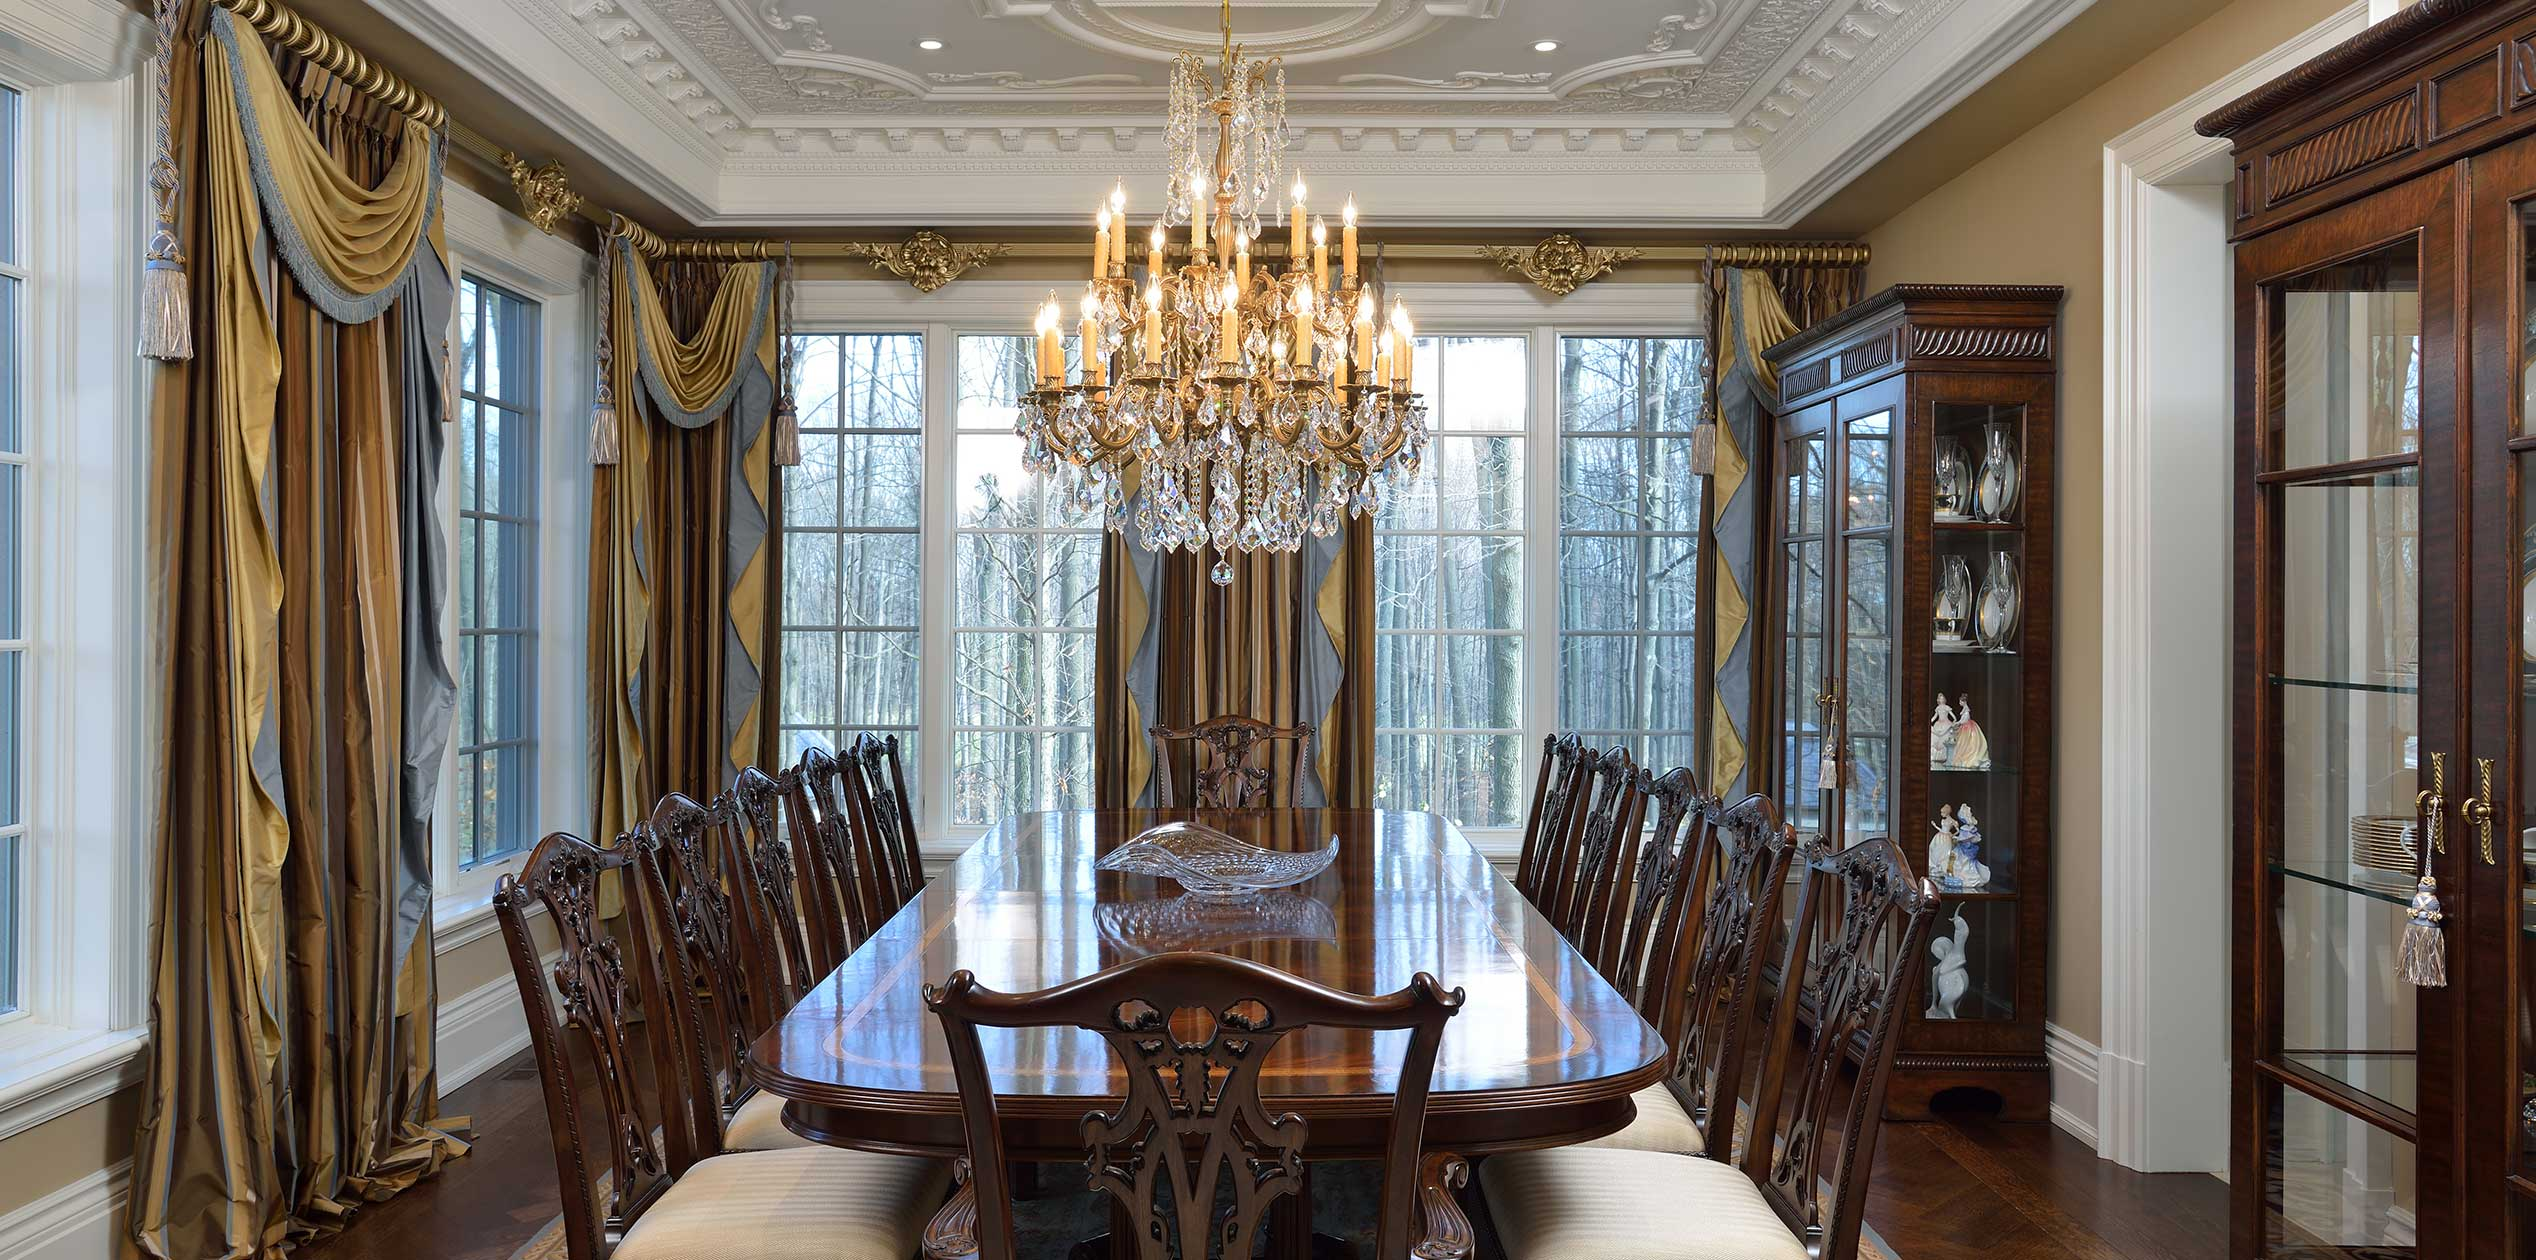 c Traditional Dining room